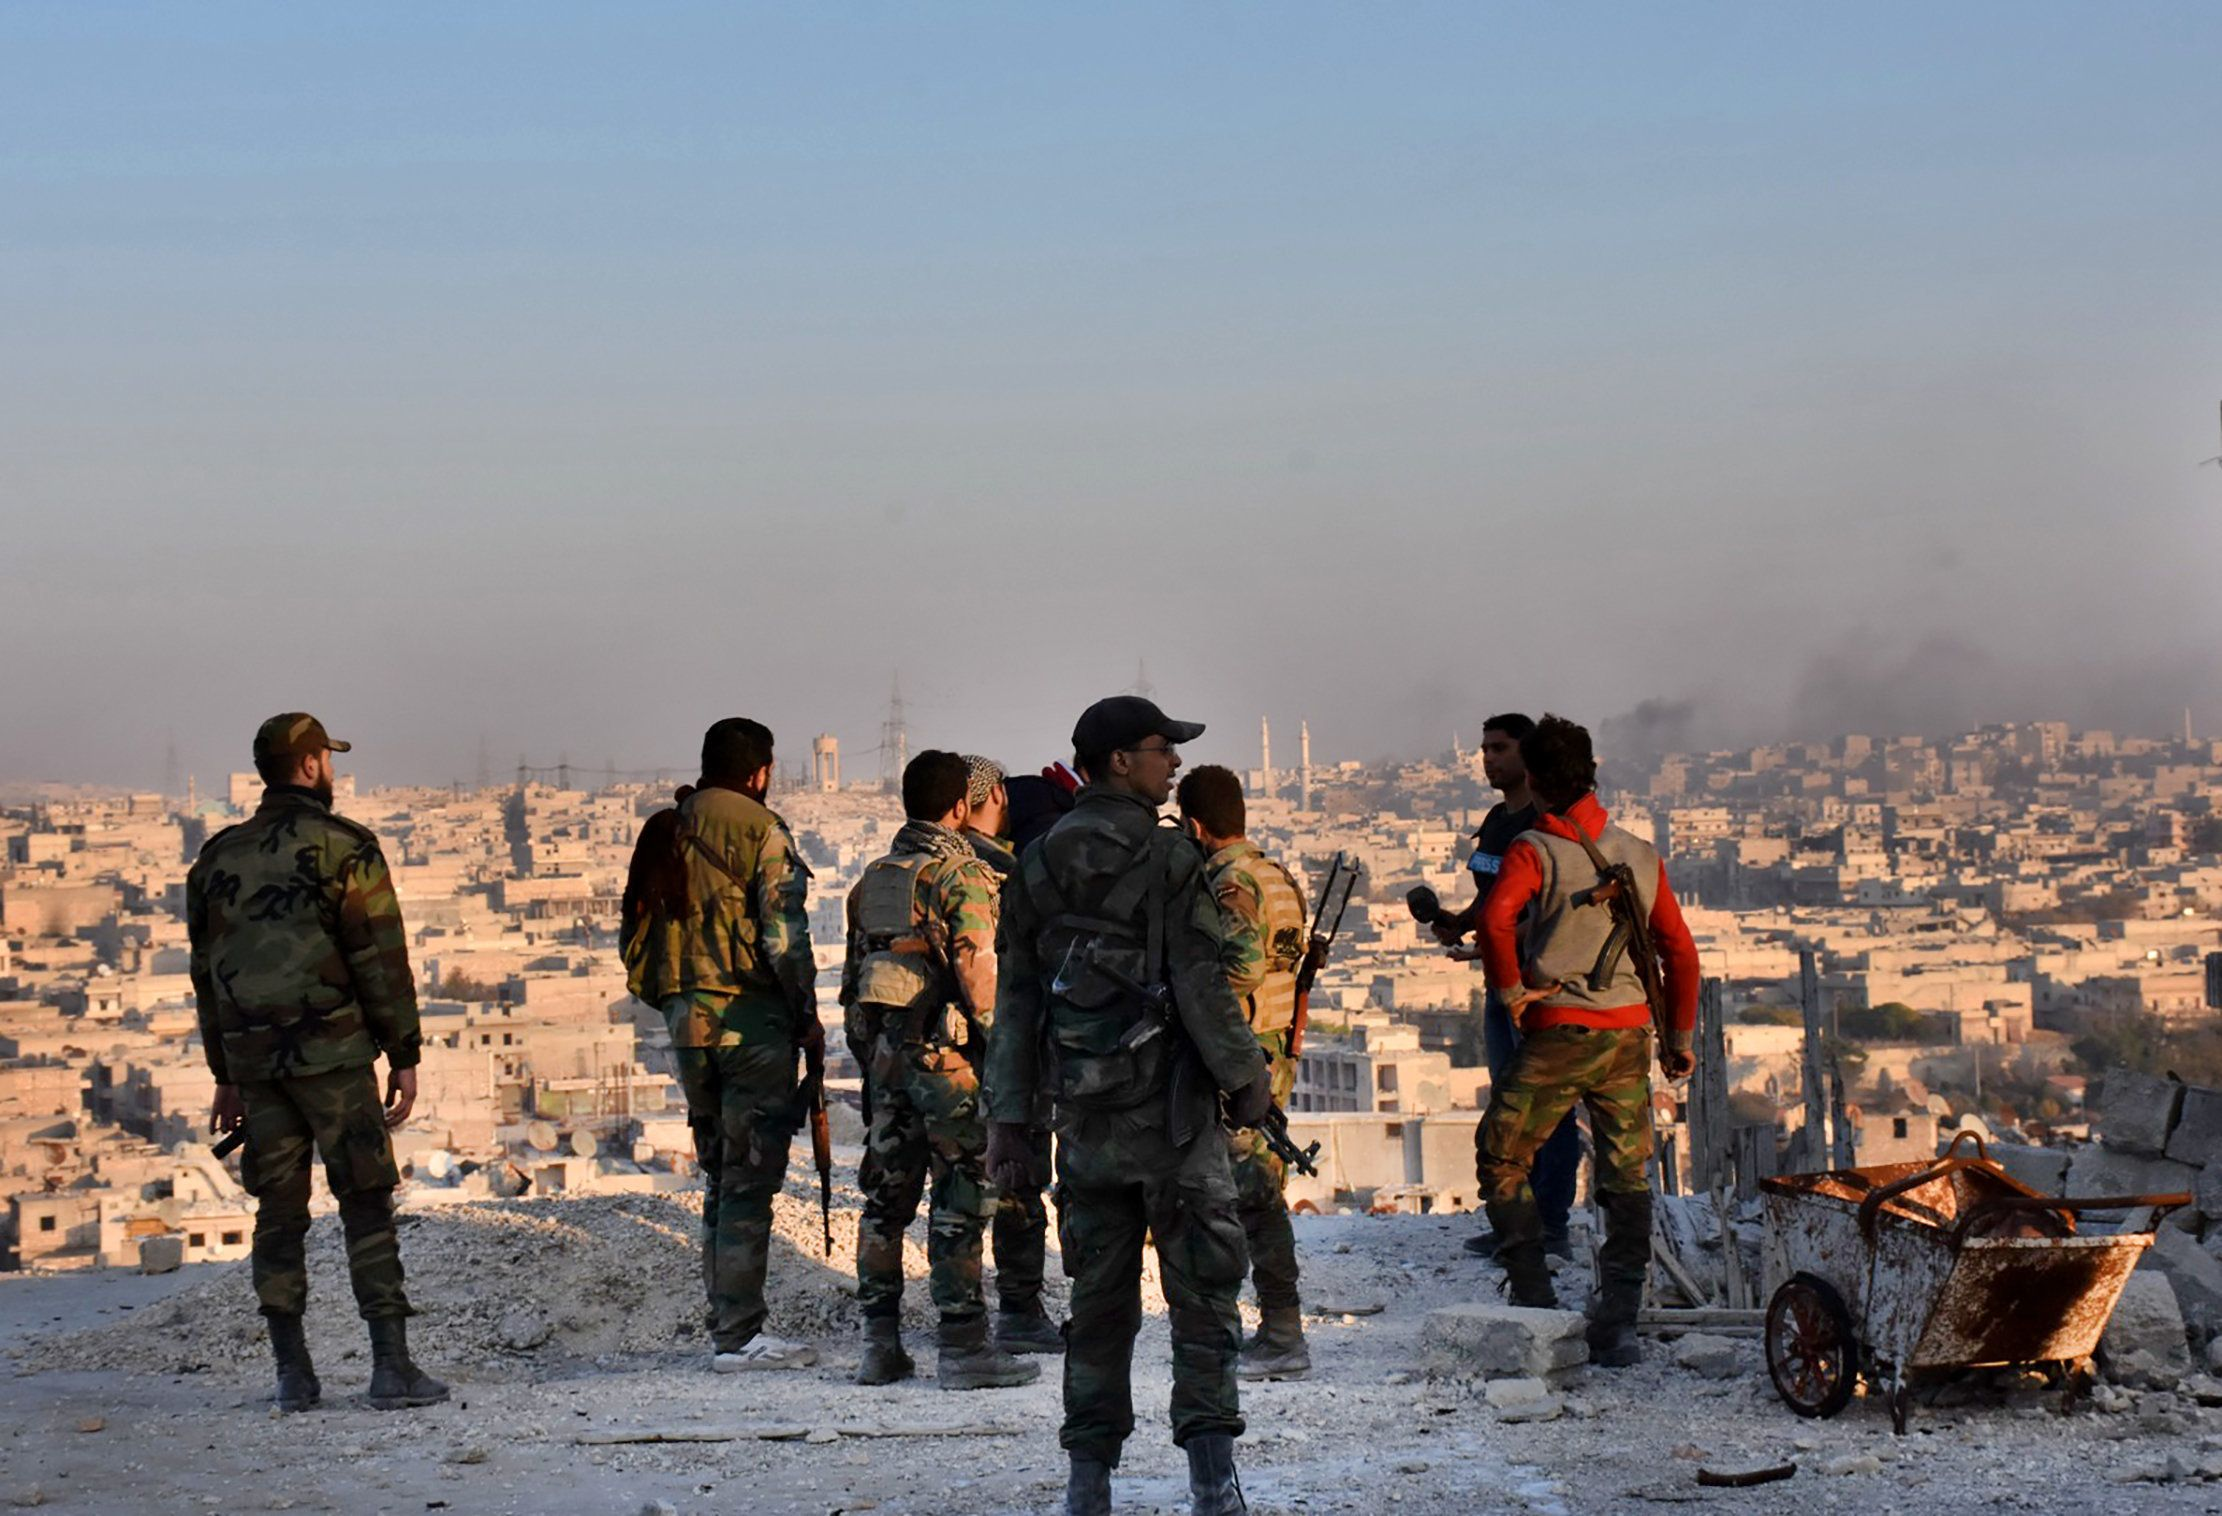 the severe civil war in syria The syrian civil war, also known as the syrian uprising or the syrian crisis (arabic language: الأزمة السورية), is an ongoing armed conflict in syria between forces loyal to the ba'ath government and those seeking to oust it.